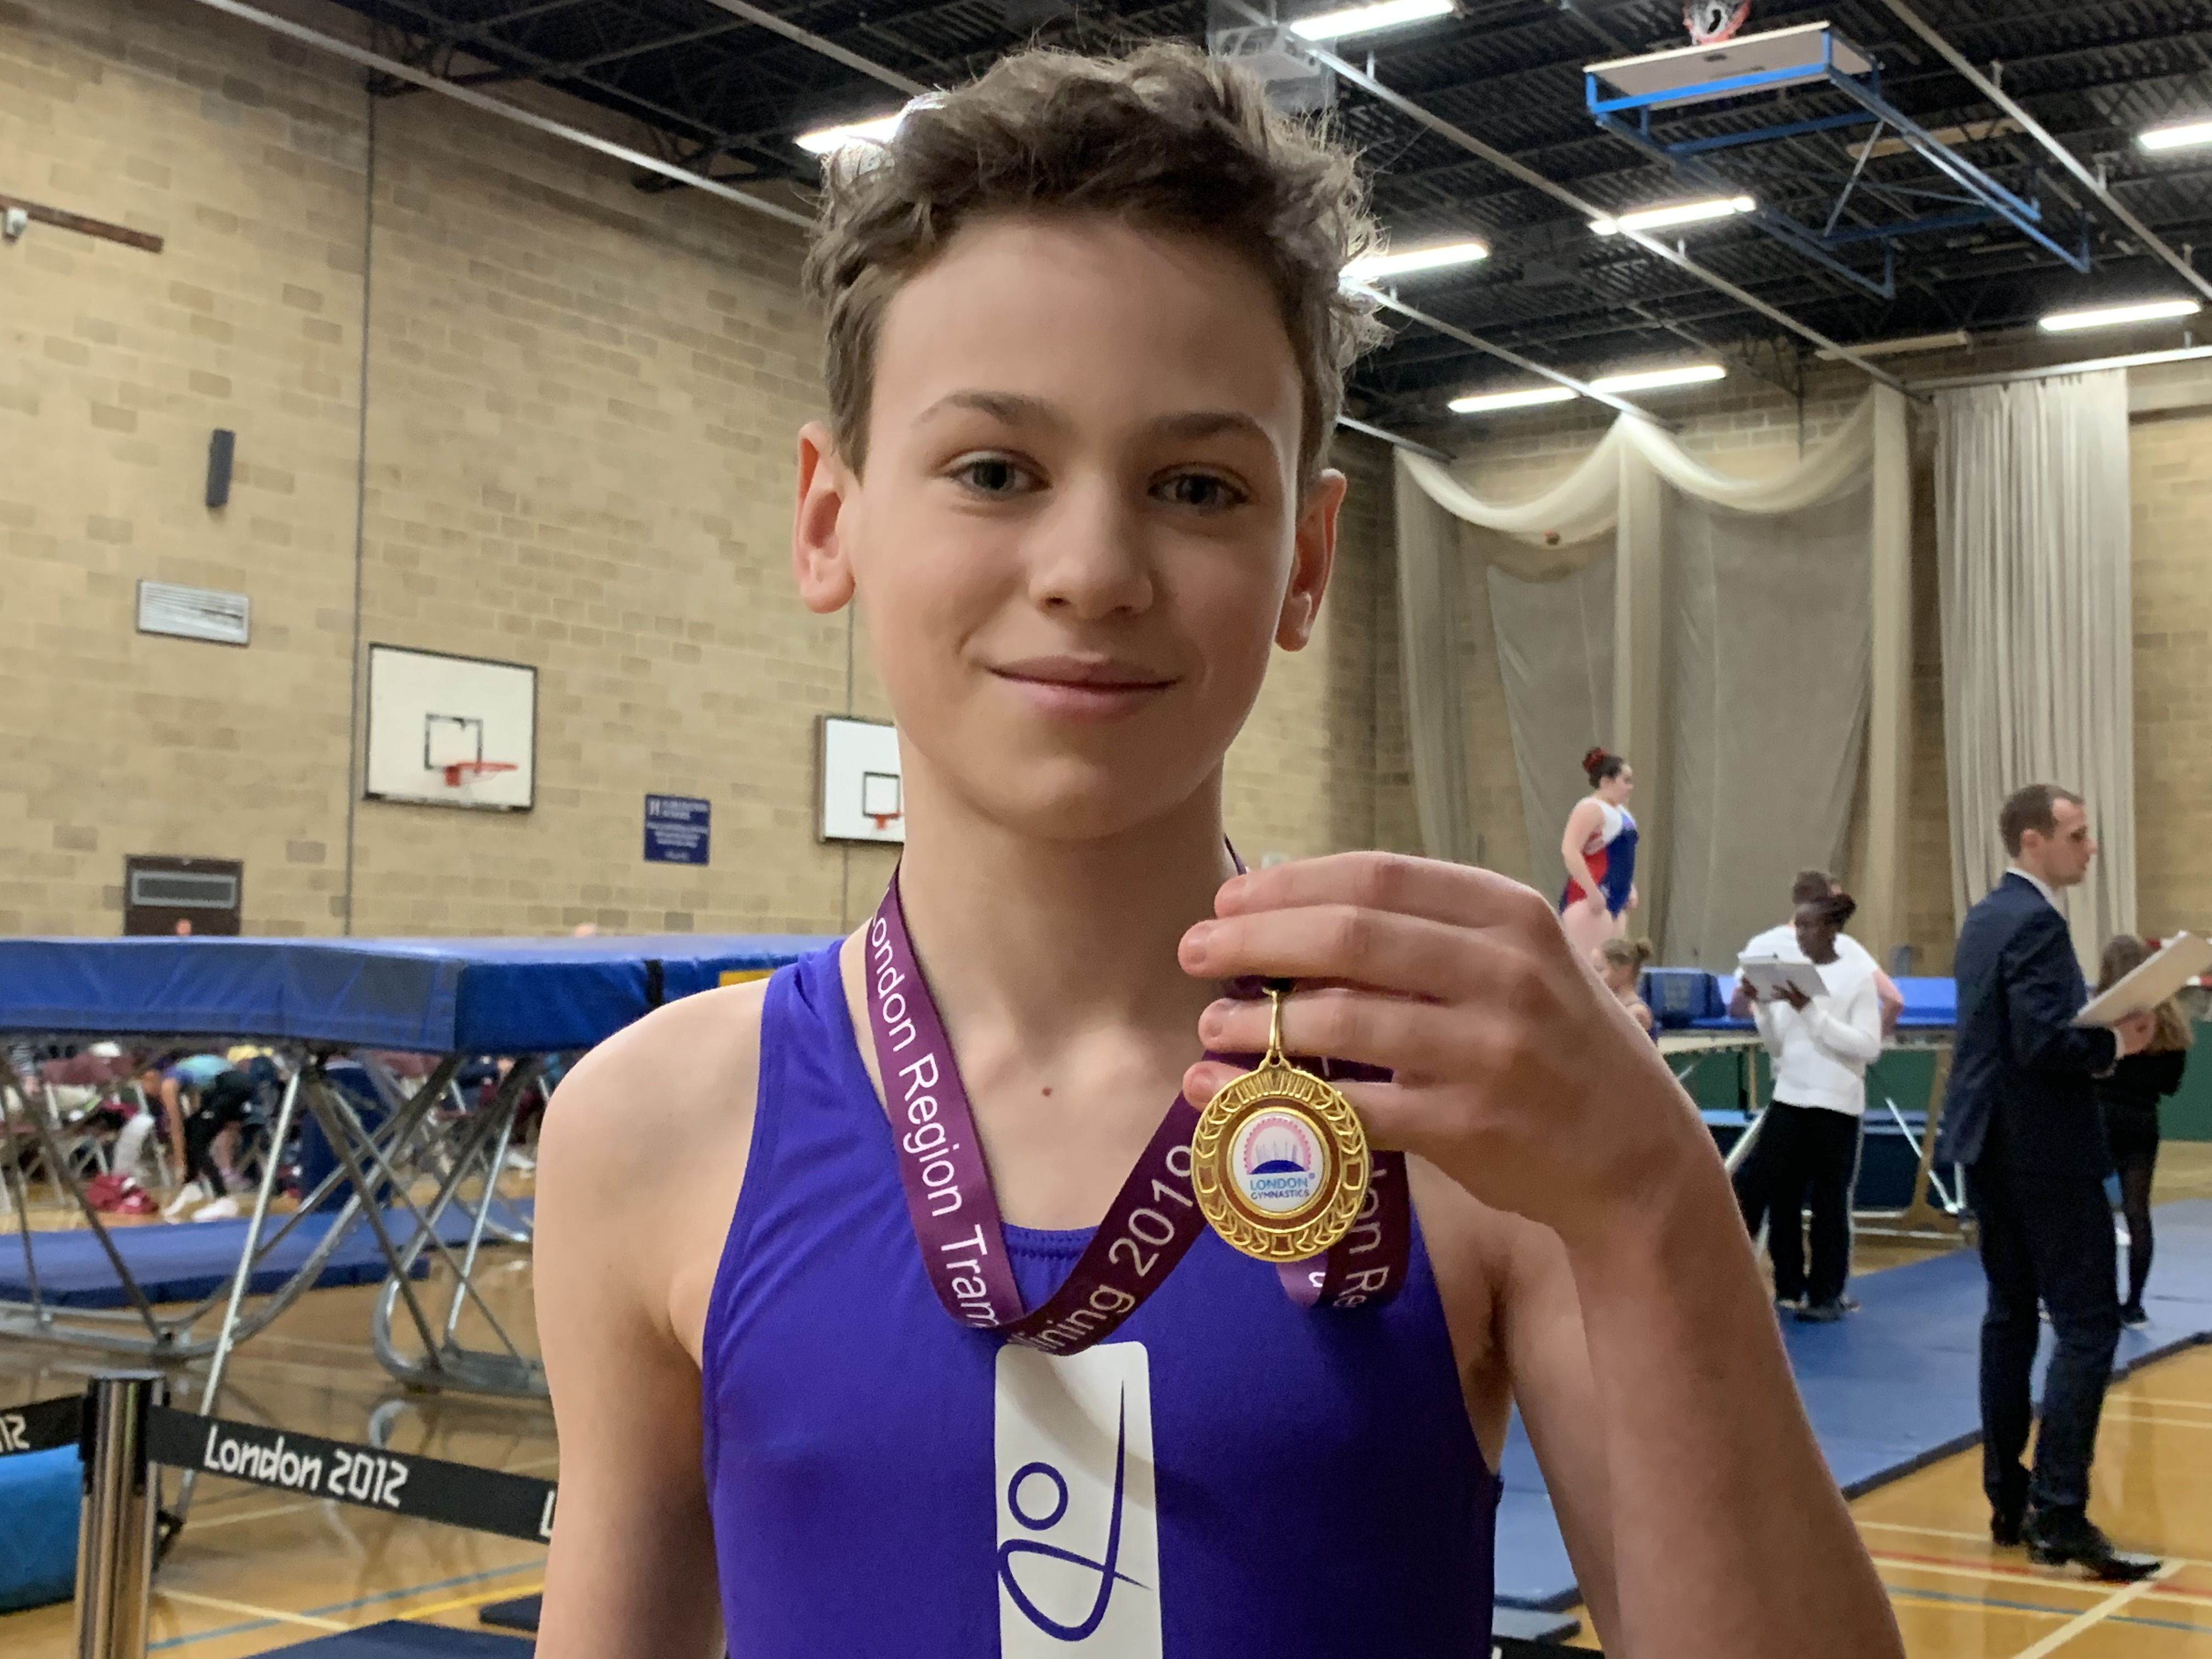 Trampoline club success trampoline and double mini trampoline DMT NDP events throughout the UK